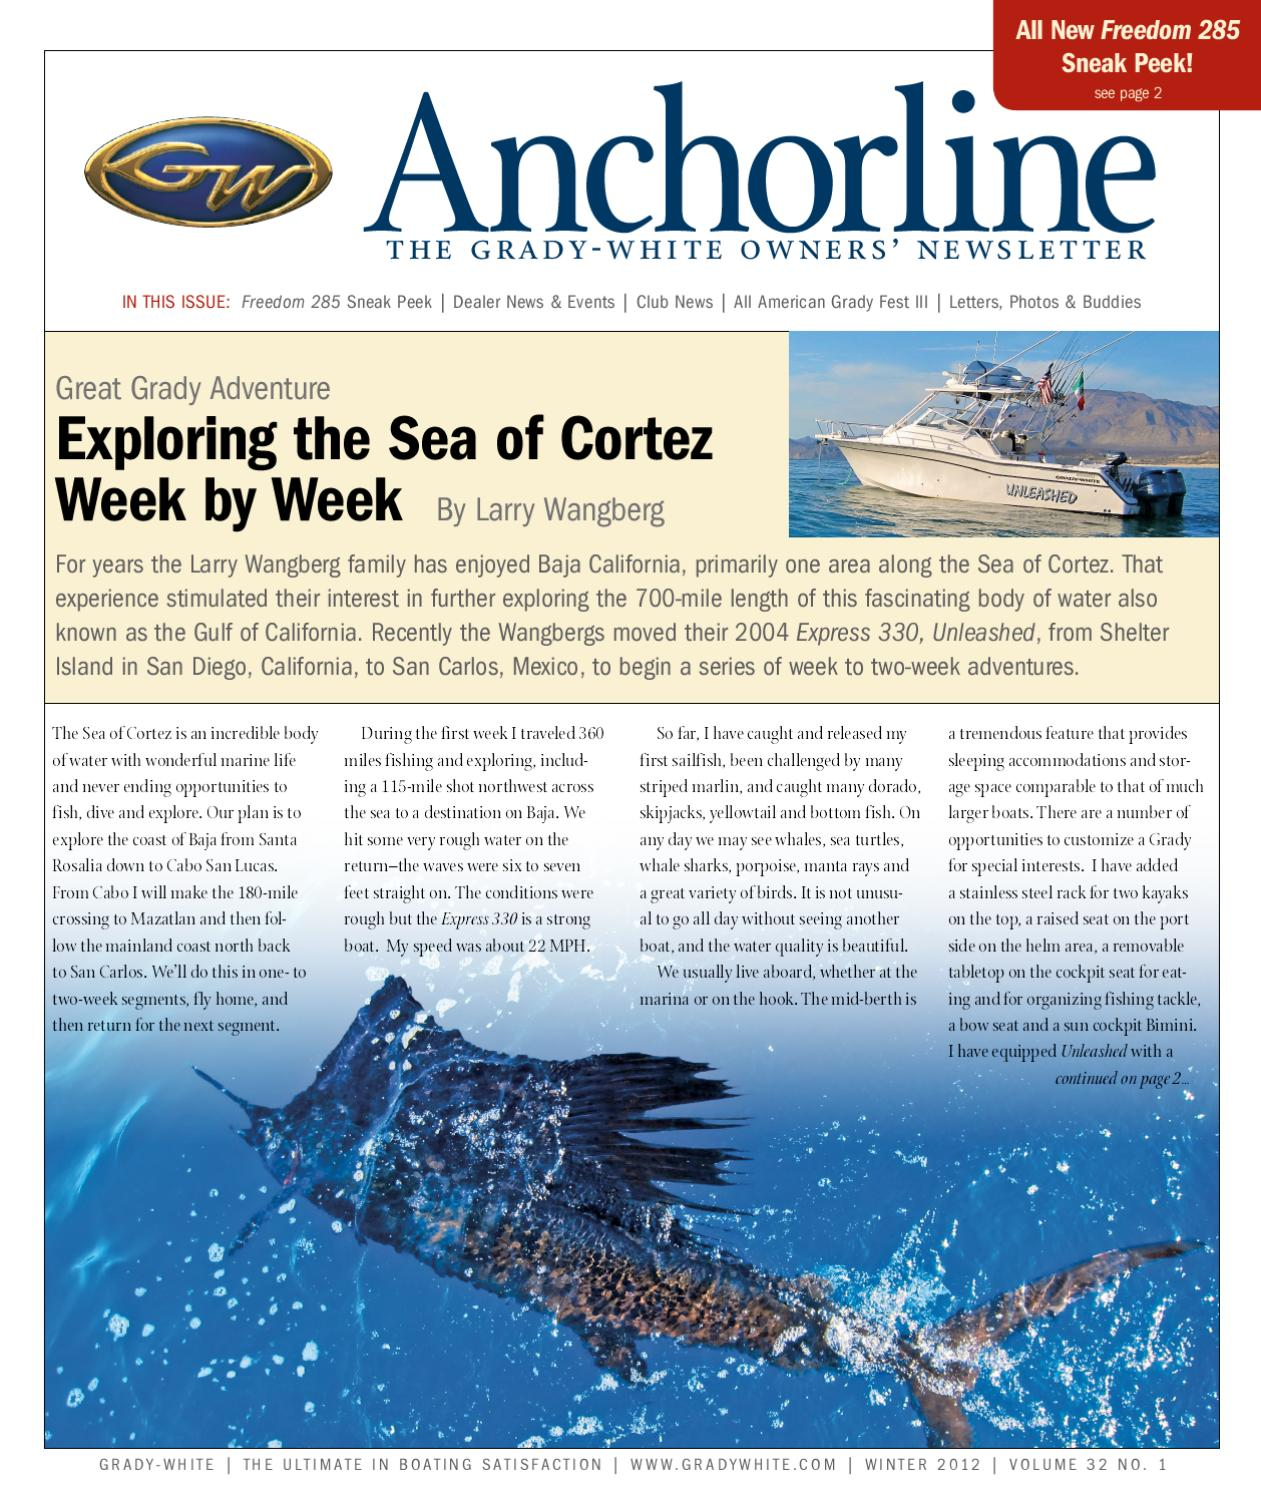 Grady-White Boats Winter 2012 Anchorline (vol  32 no  1) by Grady